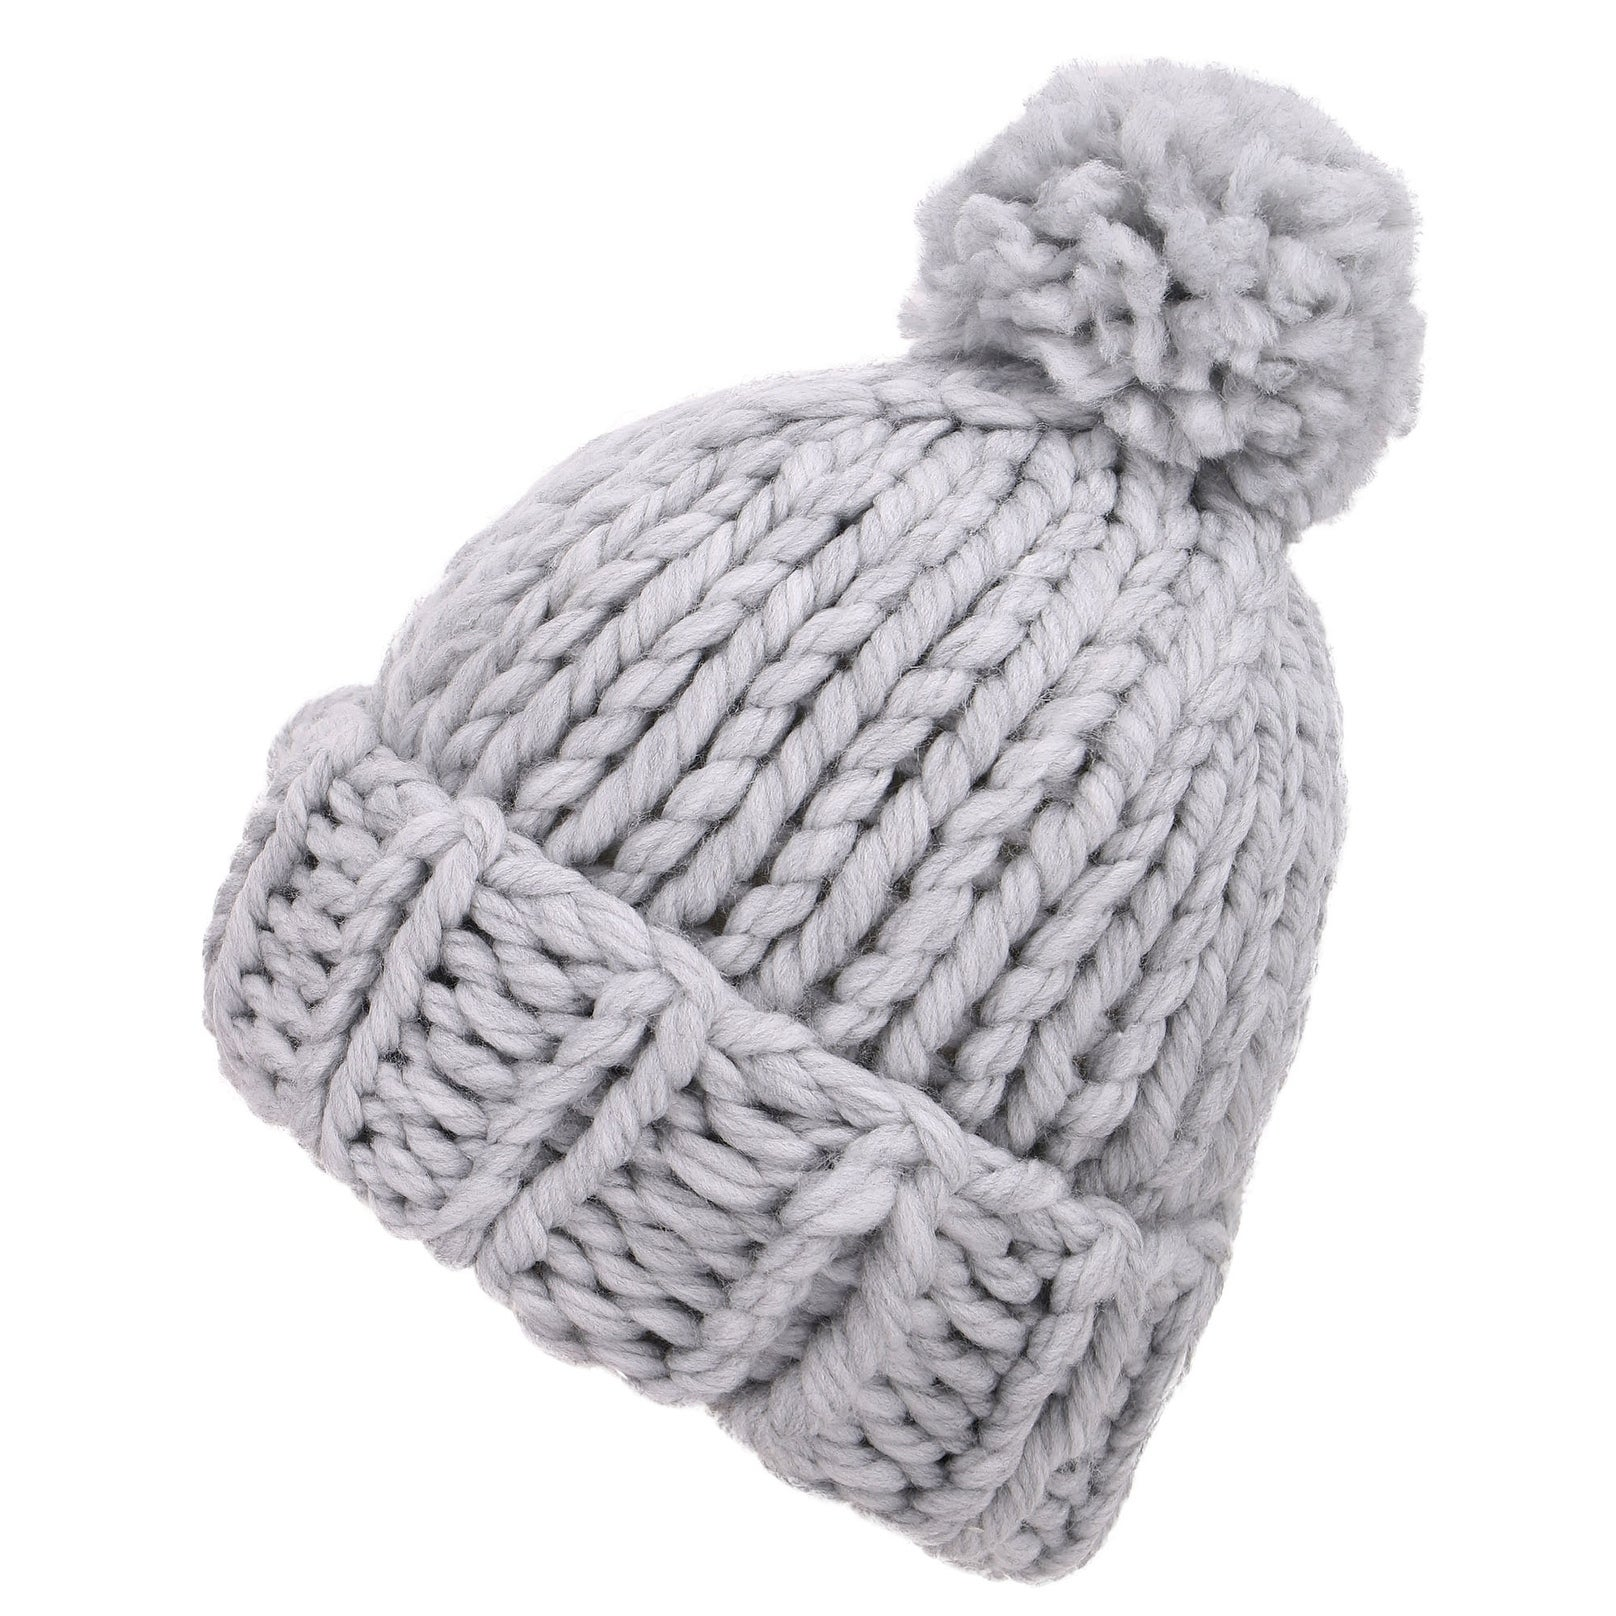 77eac7879b899 Shop Arctic Paw Women s Super Soft Chunky Cable Knit Pompom Beanie ...